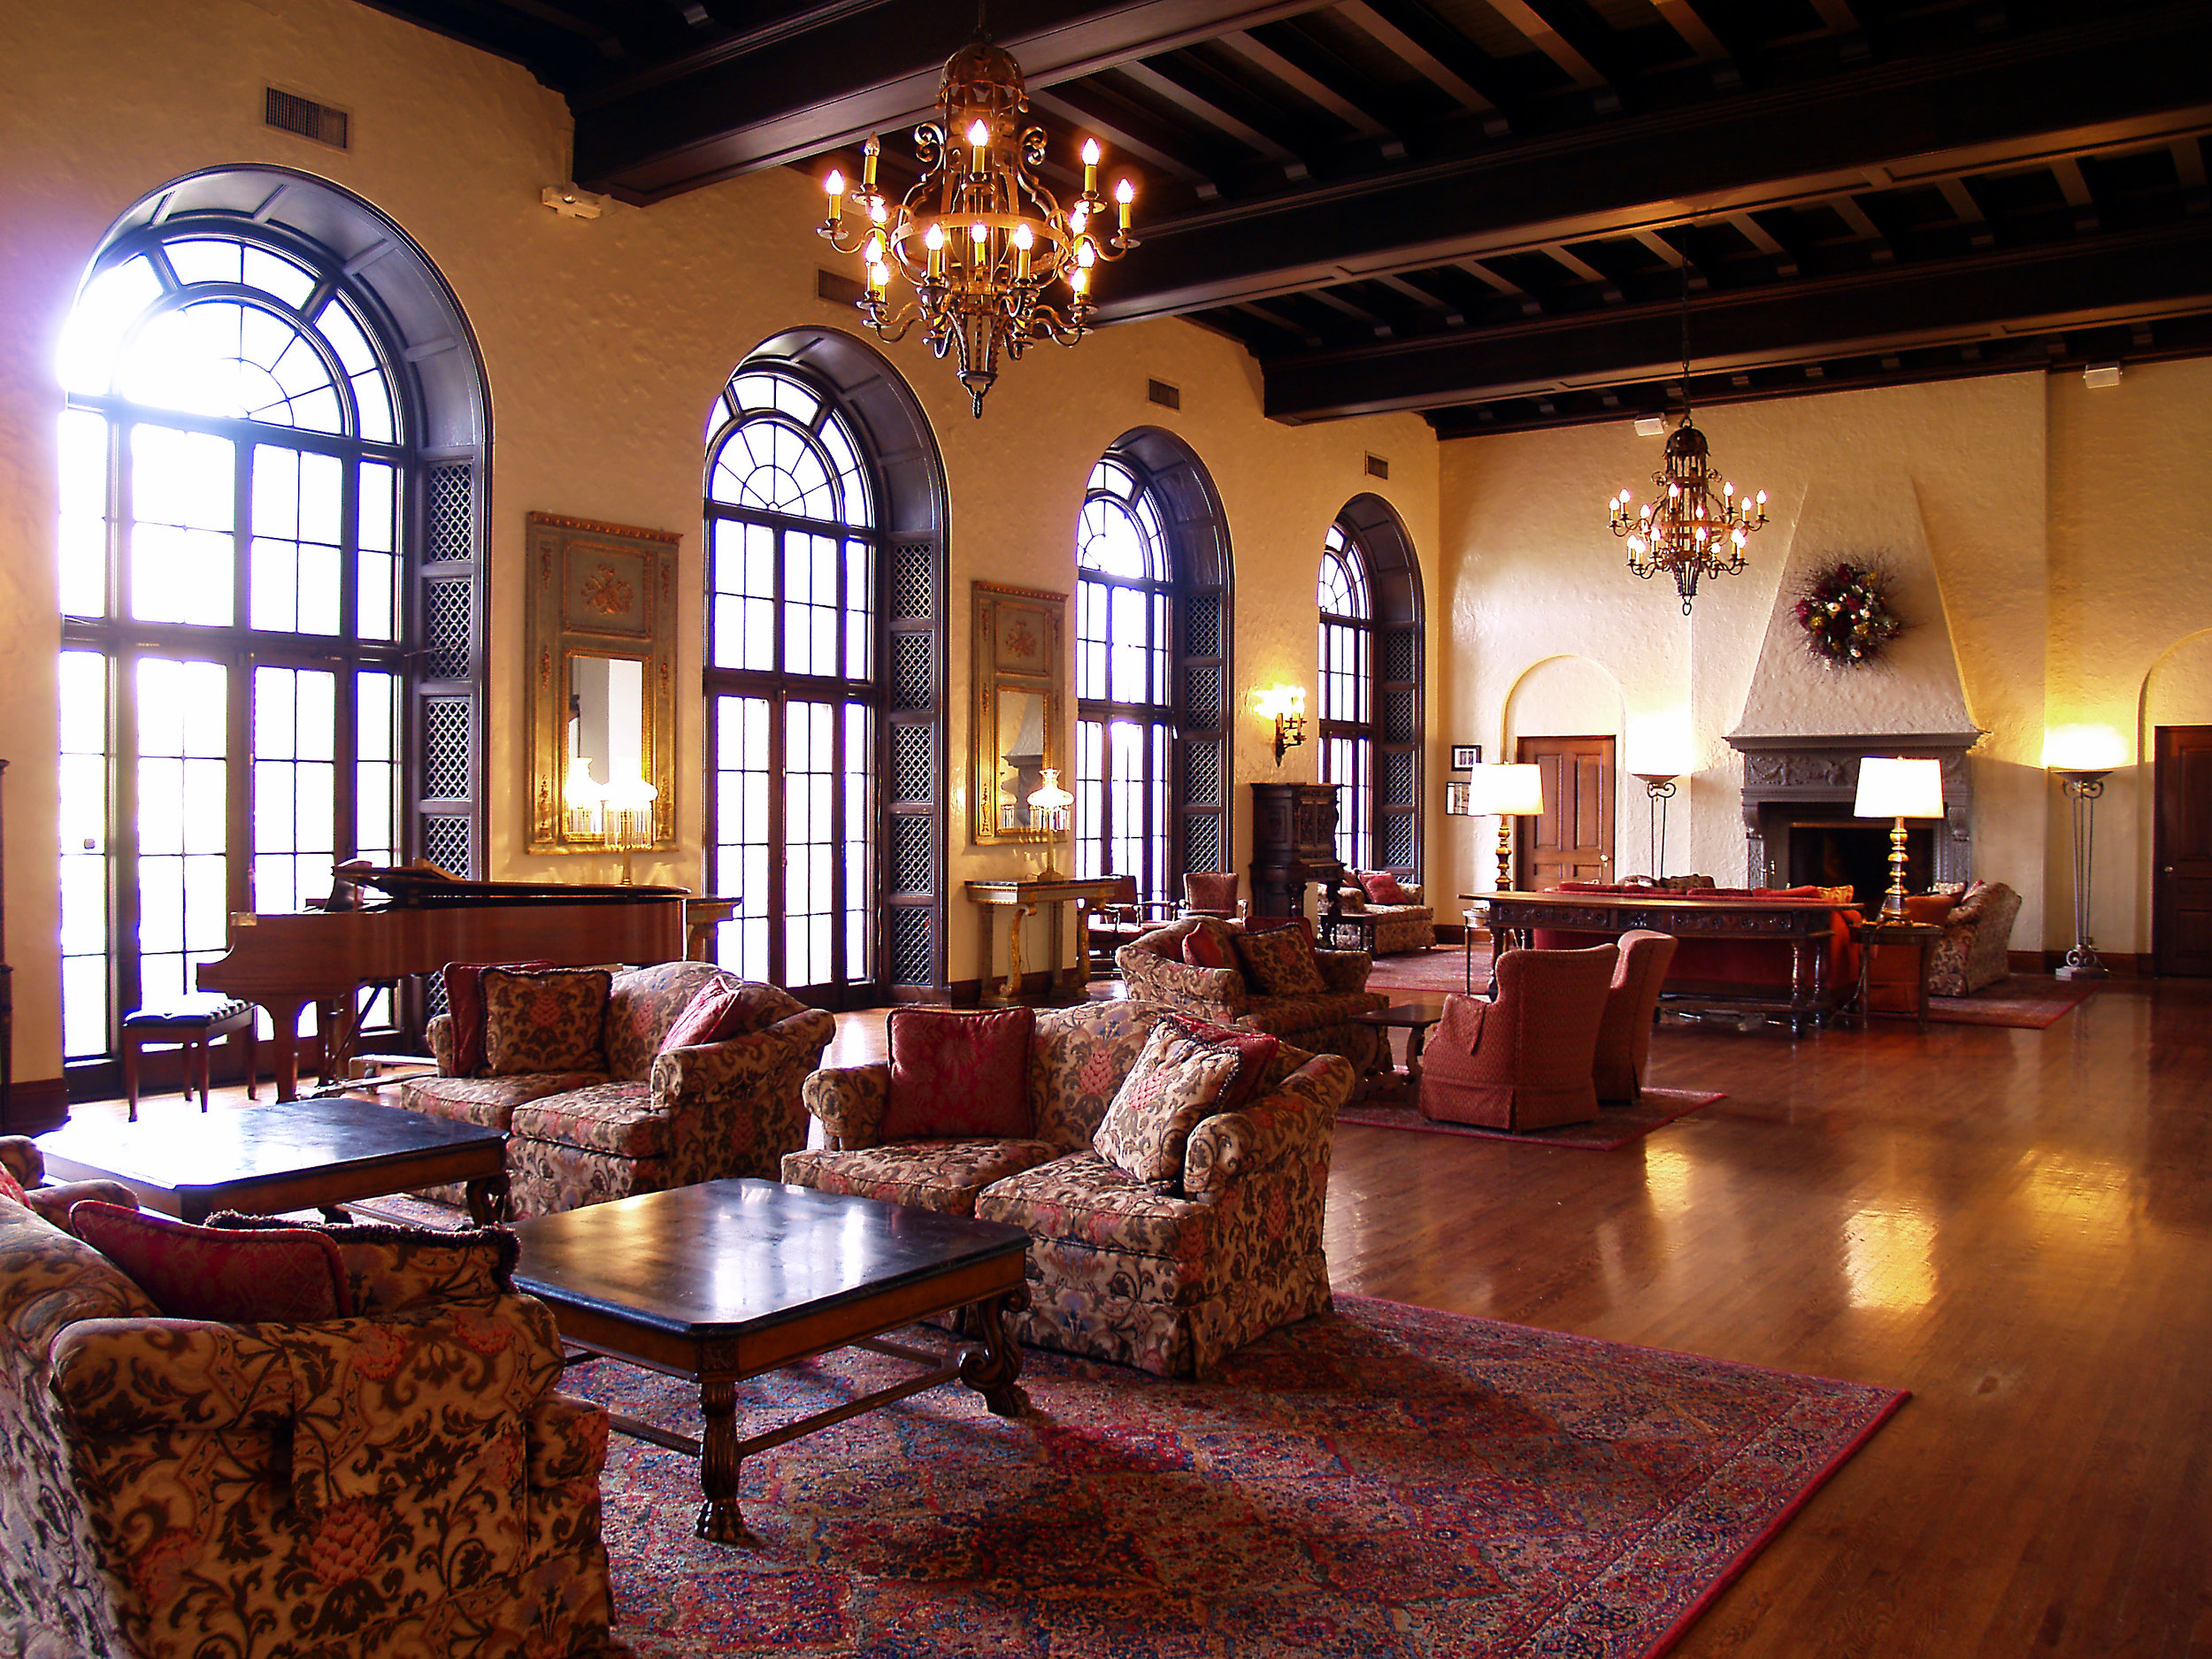 The Woman's Club of Minneapolis - Take a thrilling, unique tour of The Woman's Club that blends architecture, history and community. The Clubhouse is a Minneapolis historic treasure that features a rooftop terrace, an elegant lounge and much more. Delve into The Club's rich history of community outreach, female empowerment and unity.